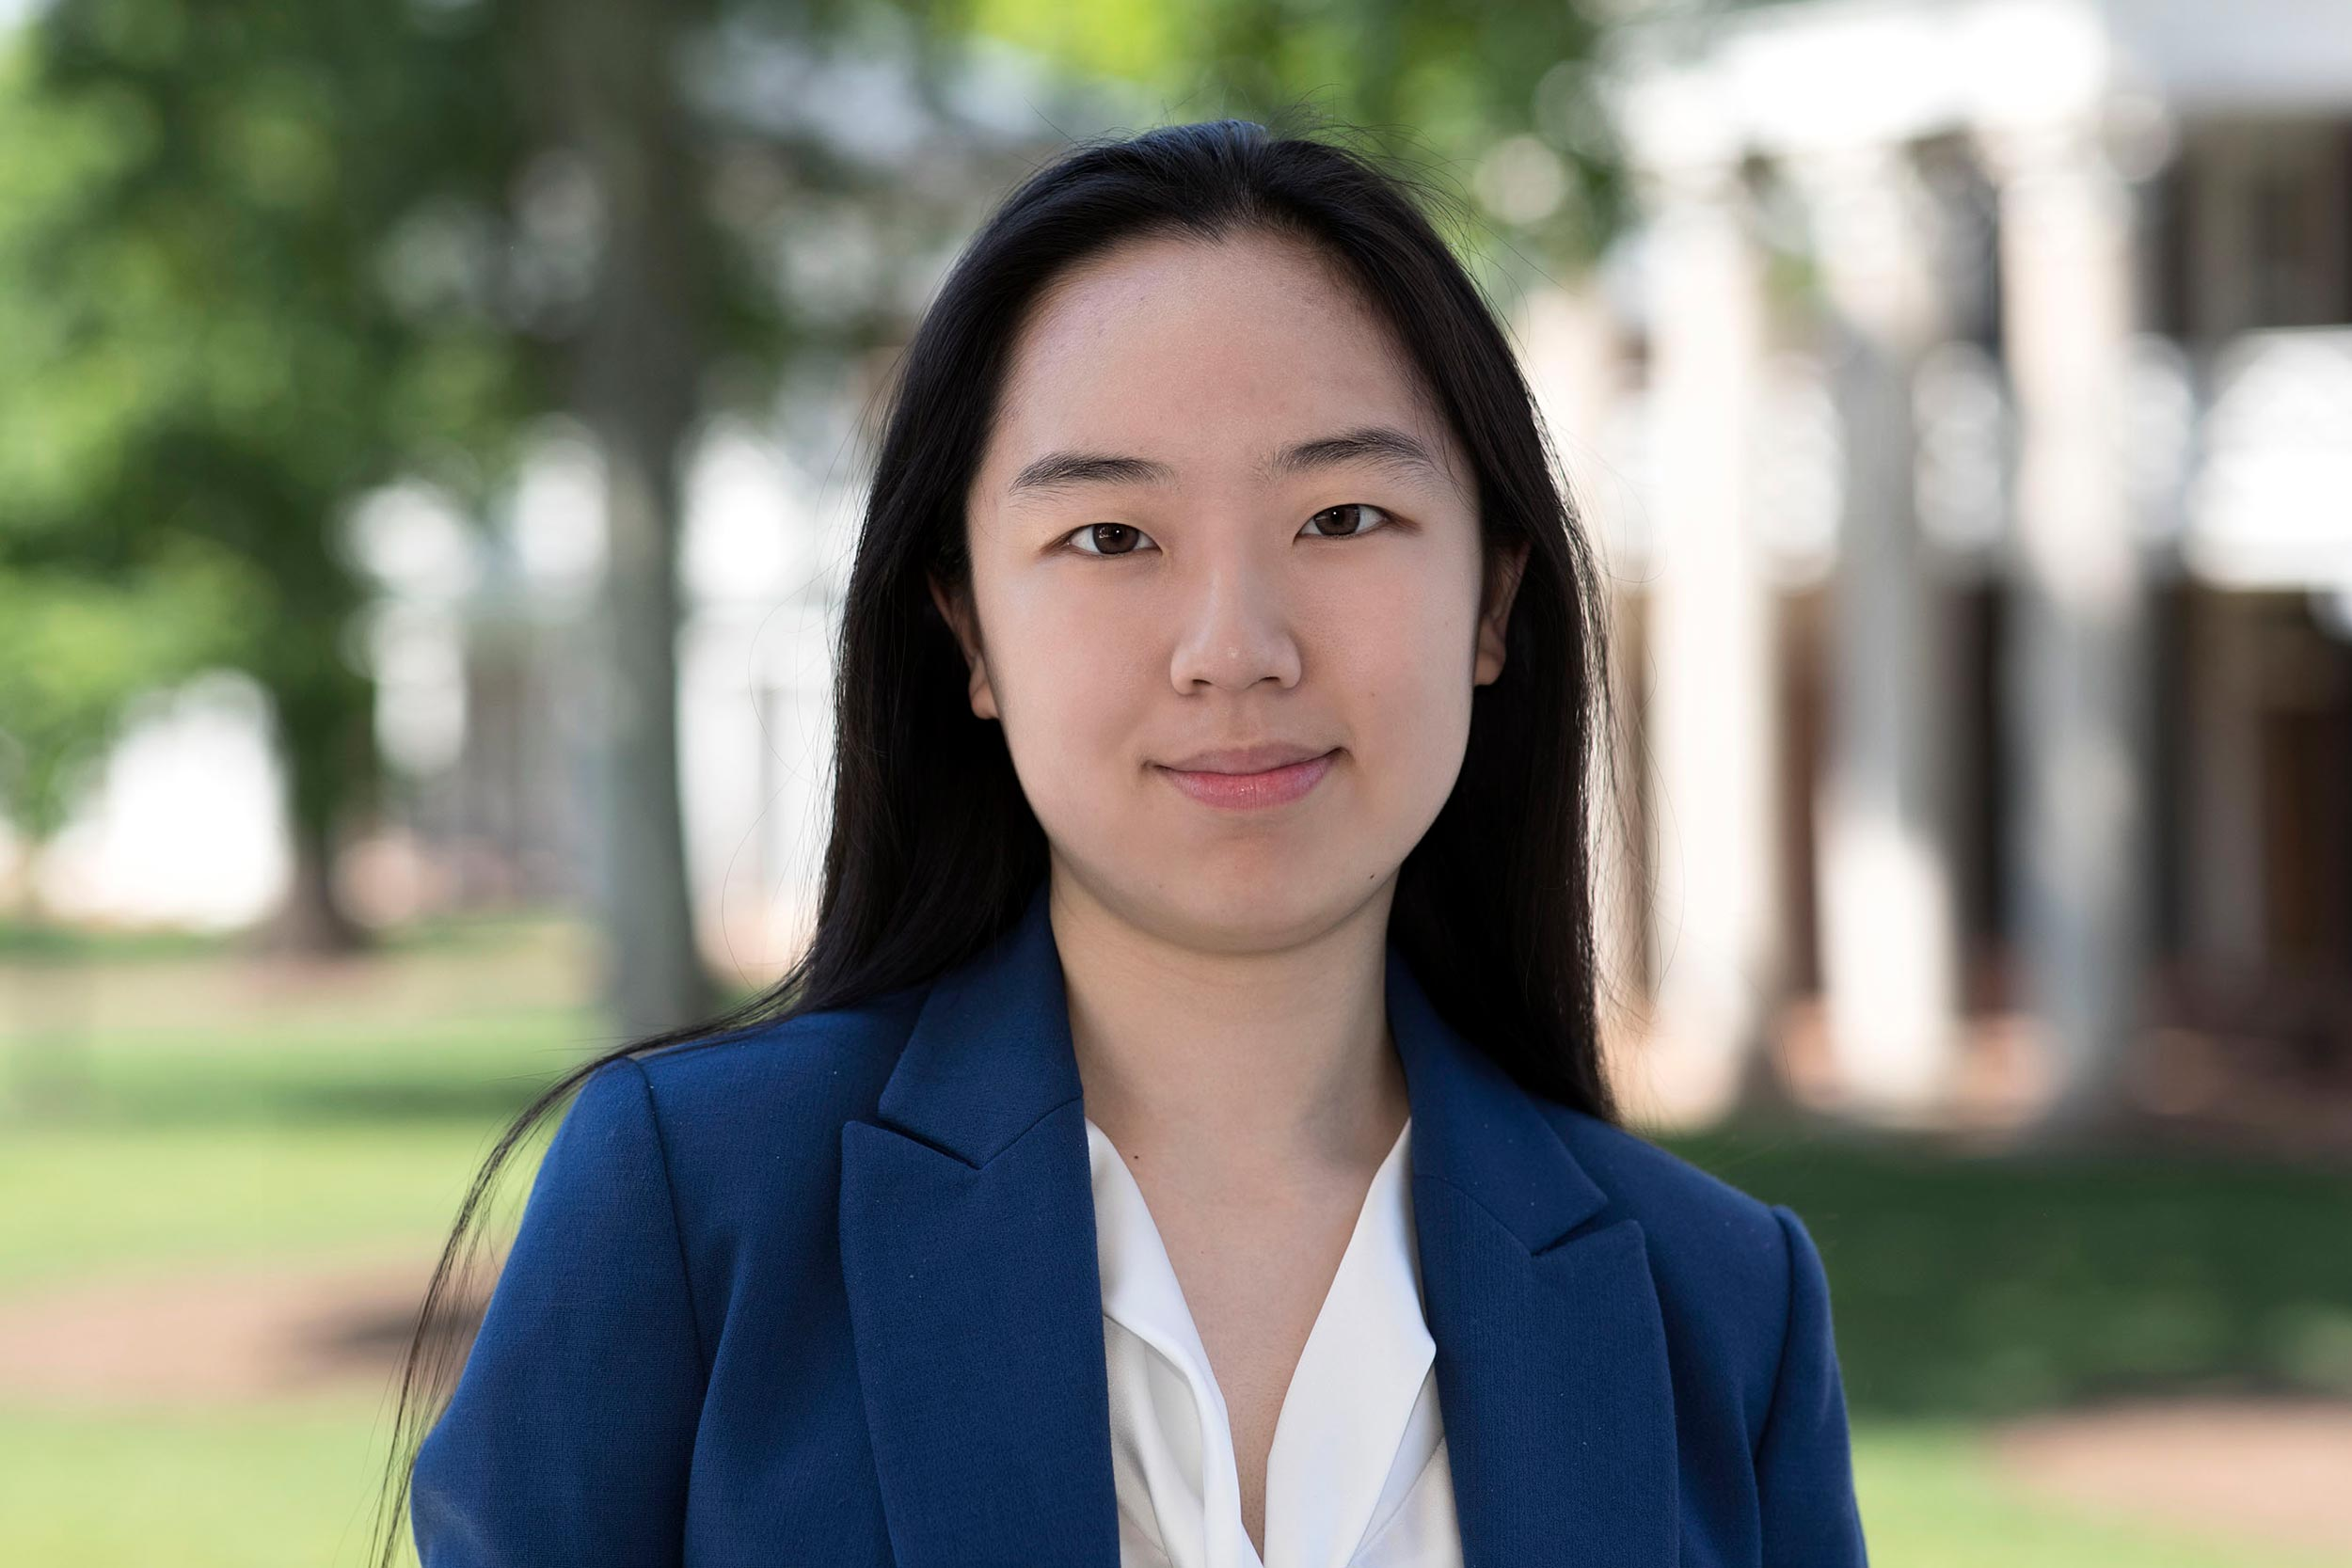 Chelsea Li's research fits into a busy schedule that also includes serving as a volunteer firefighter and EMT, doing science outreach at local elementary schools and serving as vice chair on UVA's Diversity Engagement Committee.